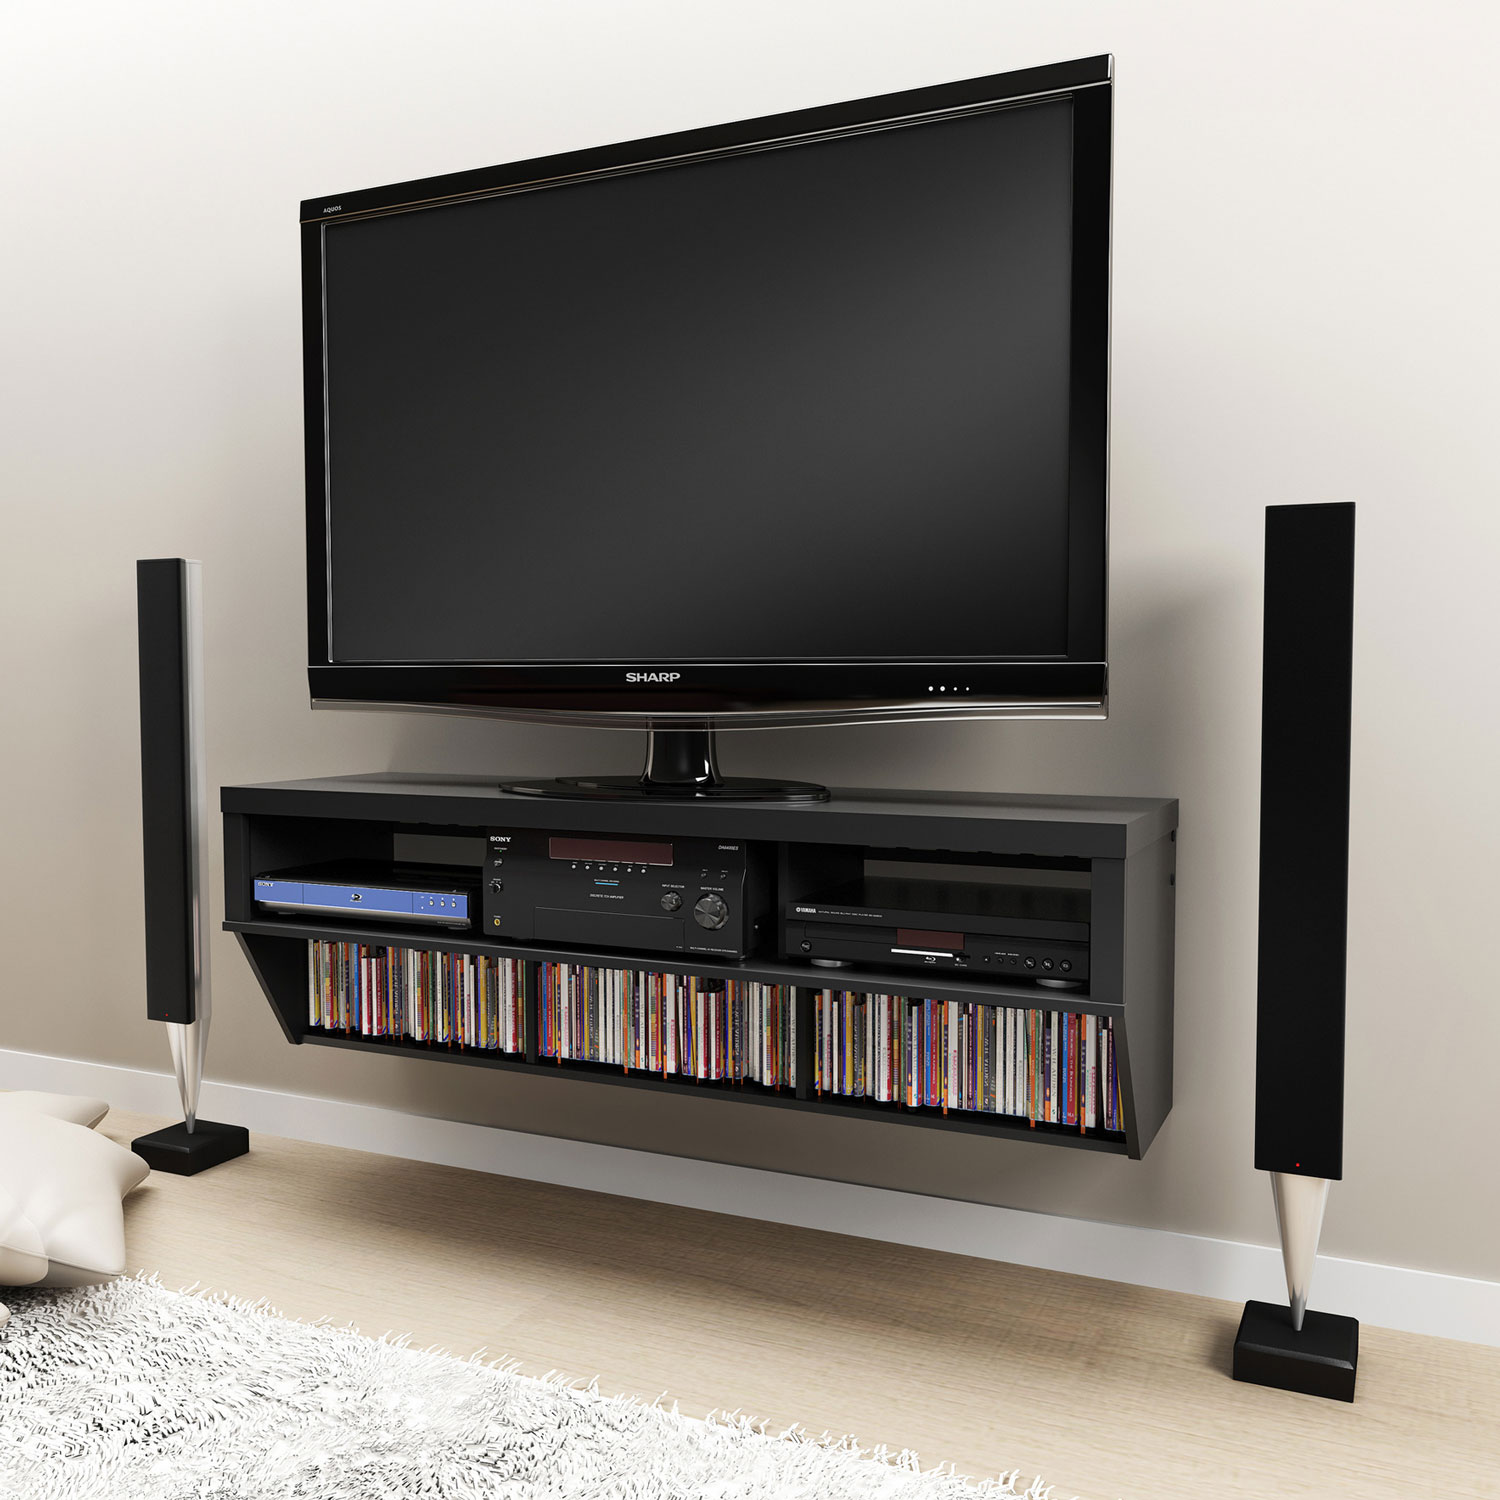 Black 58 Wide Wall Mounted AV Console - Entertainment Center, TV Stands,  Entertainment Furniture - Wall Mounted Entertainment Unit Cymun Designs